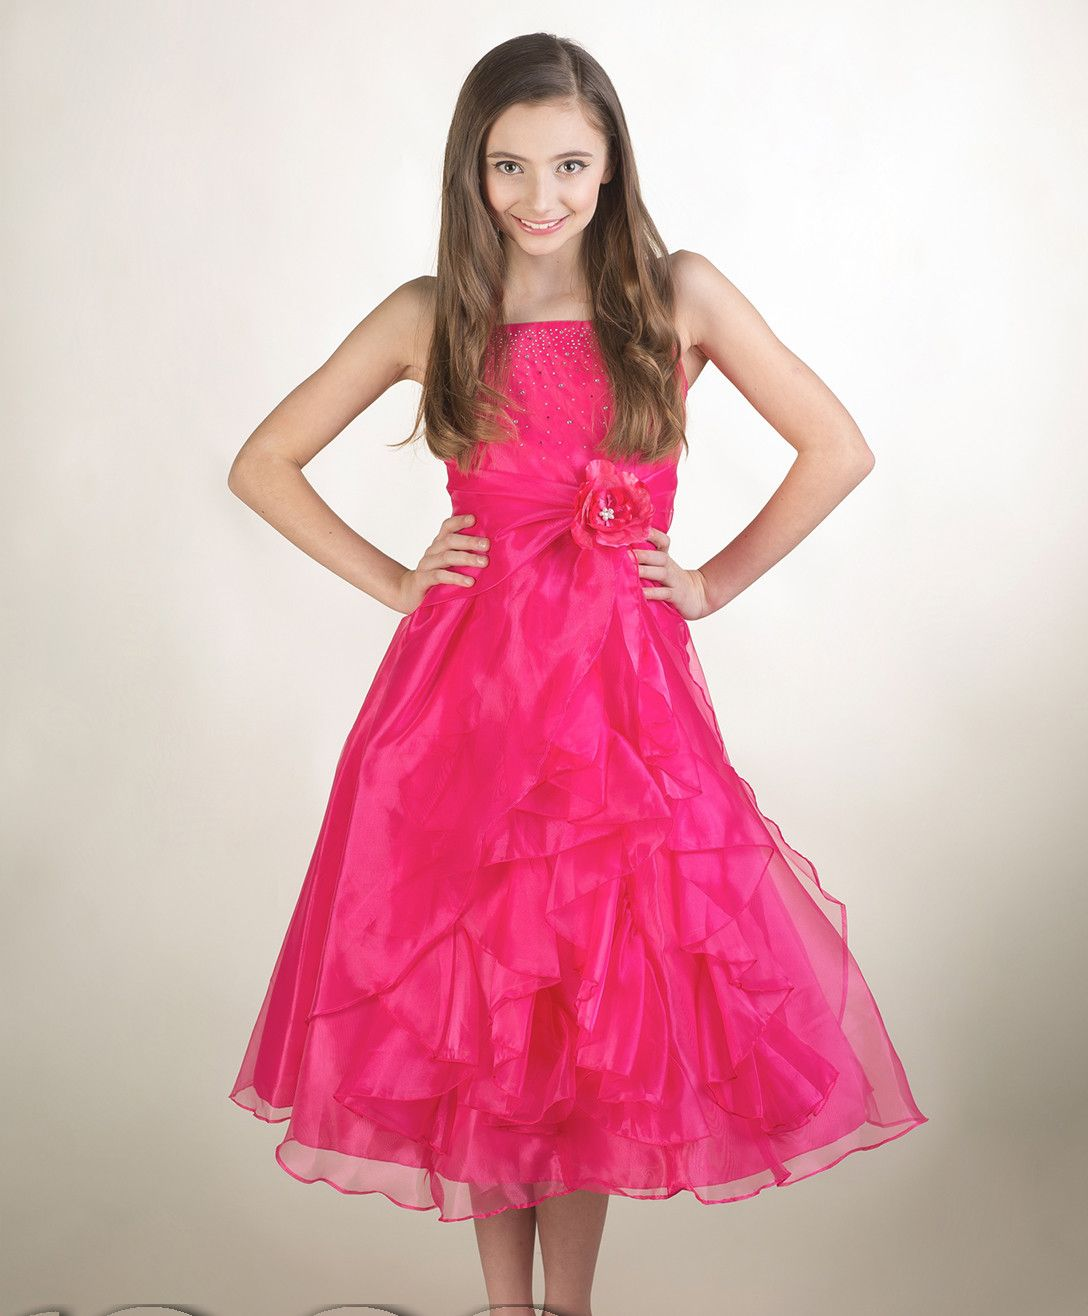 Girls Party Dresses 7-16 | Party Dresses For Girls 7 16